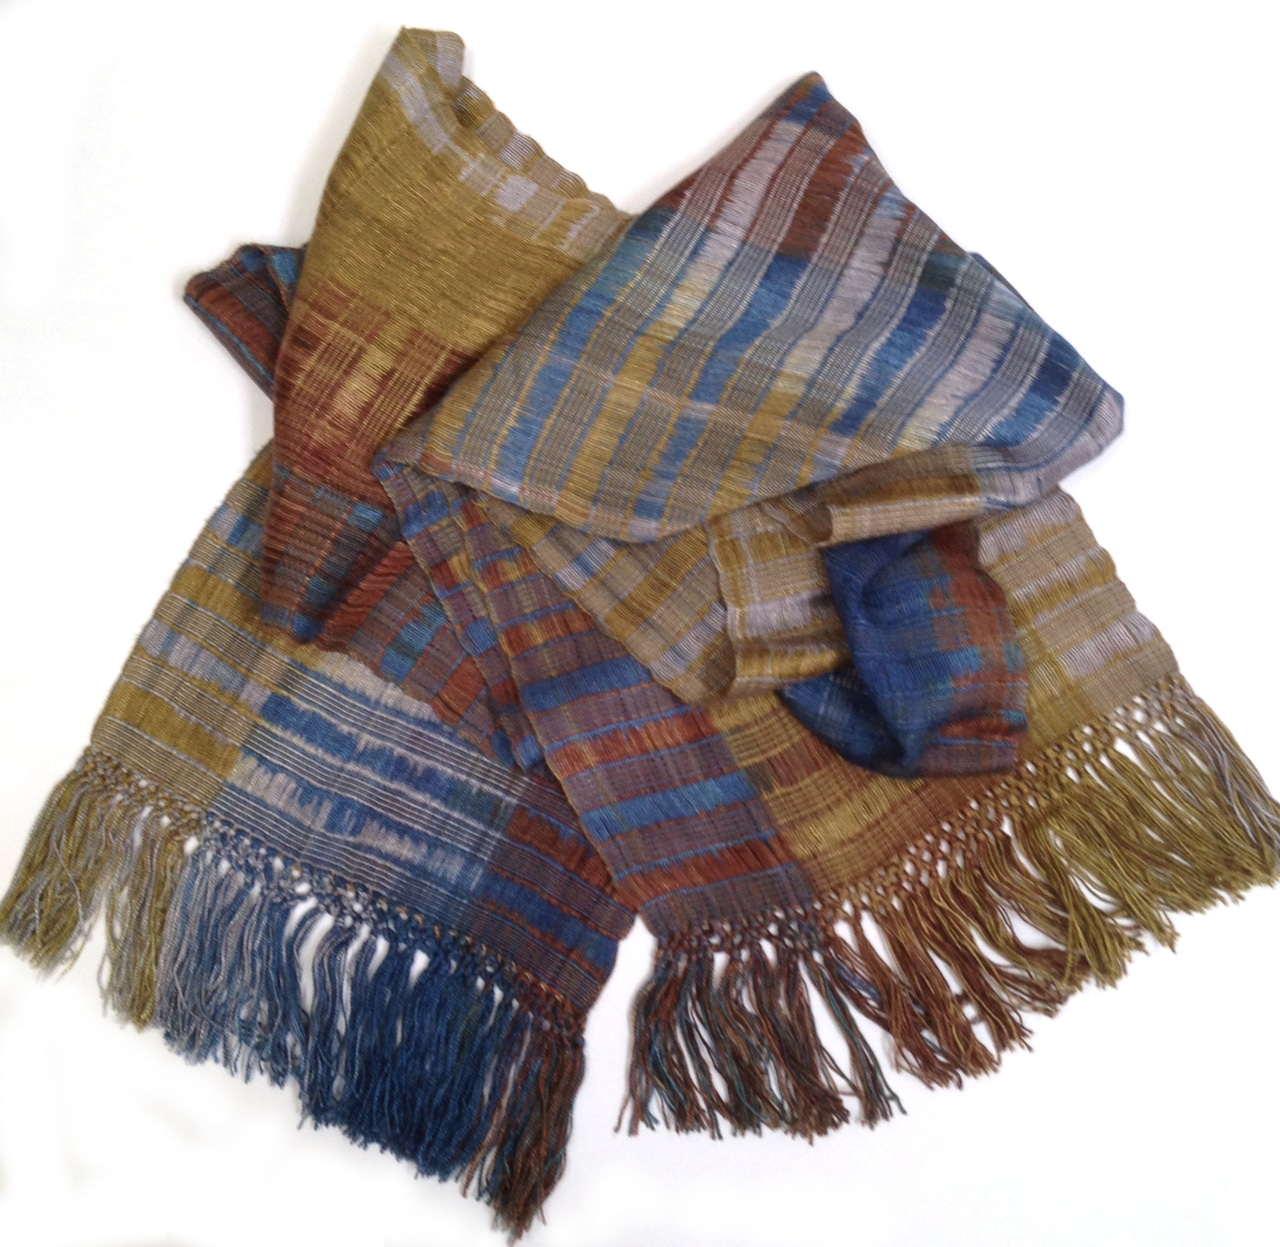 Blue, Olive, Gray, Brown - Lightweight Bamboo Open-Weave Handwoven Scarf 8 x 68